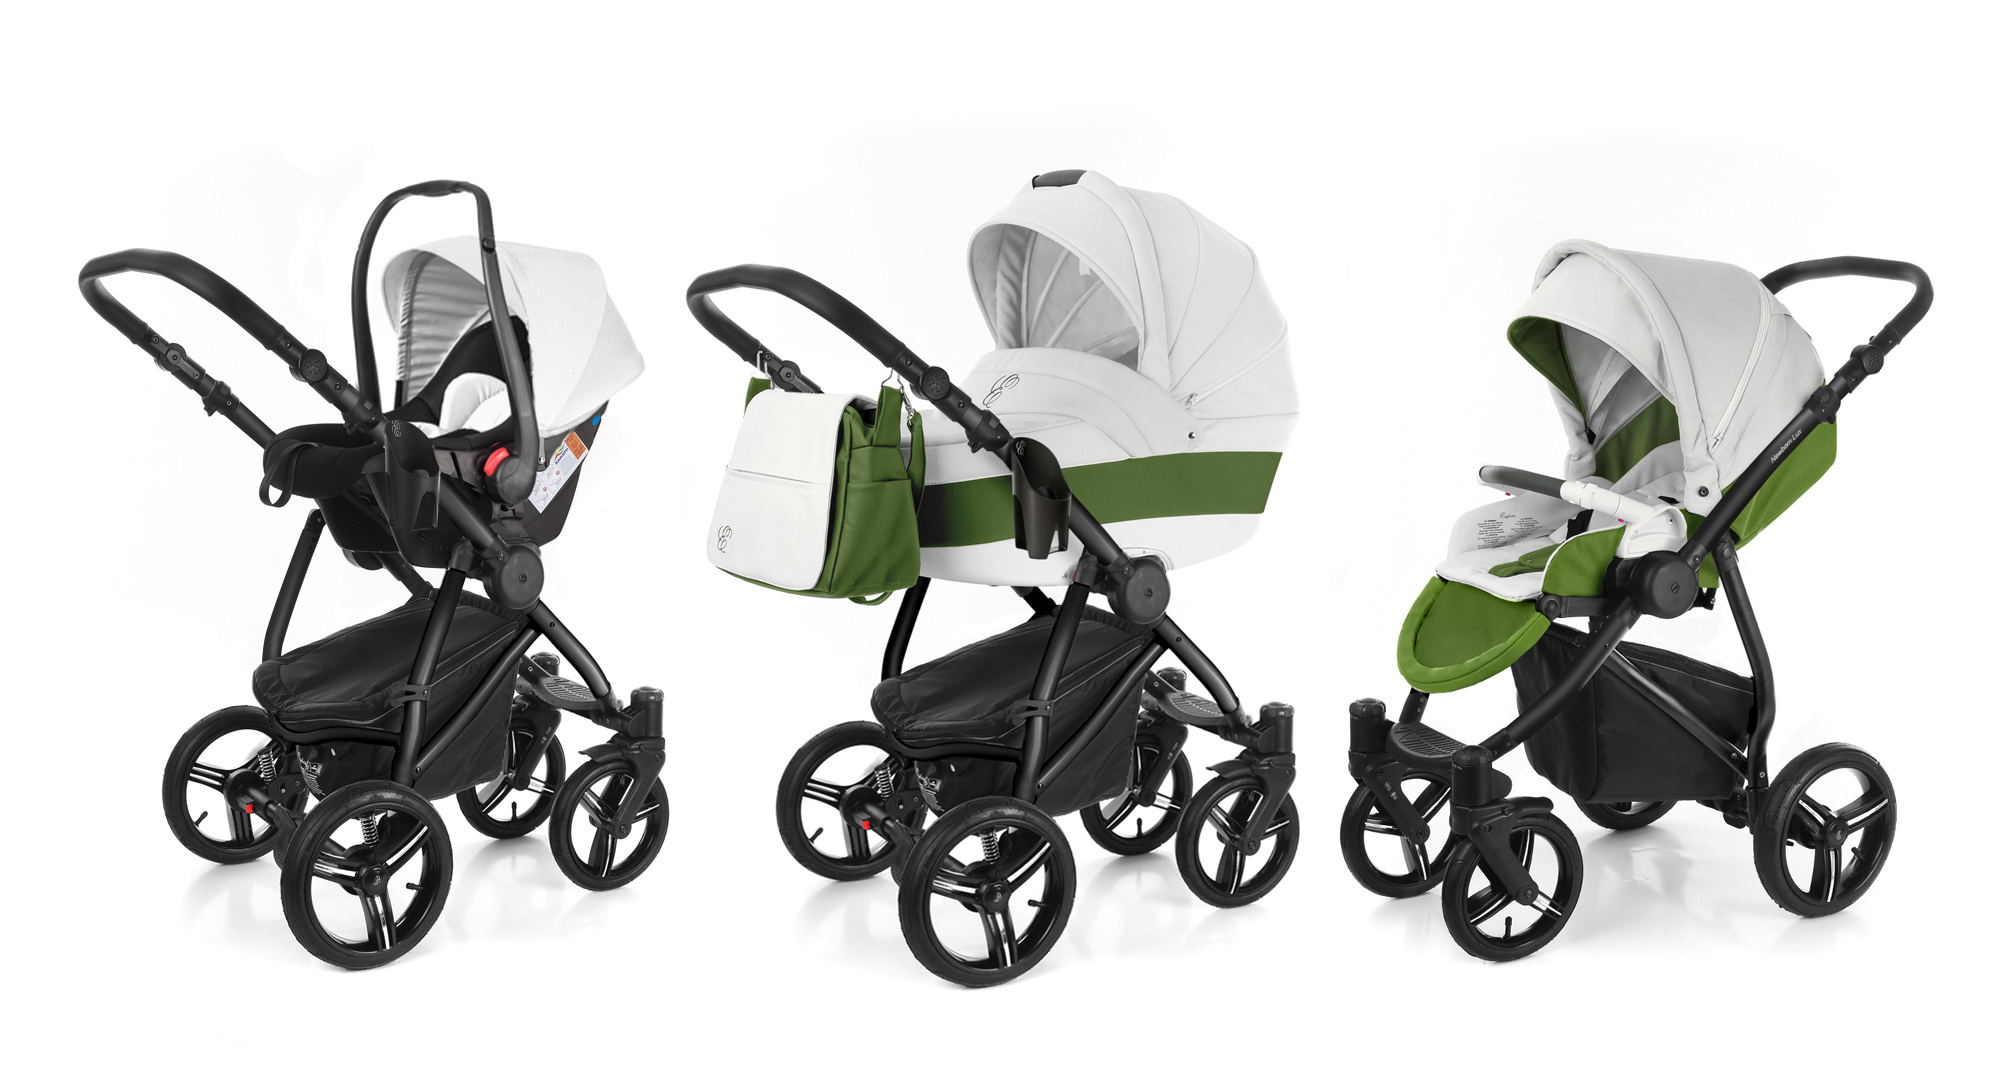 Коляска 3 в 1 Esspero Grand Newborn Lux (шасси Black). Фото N11